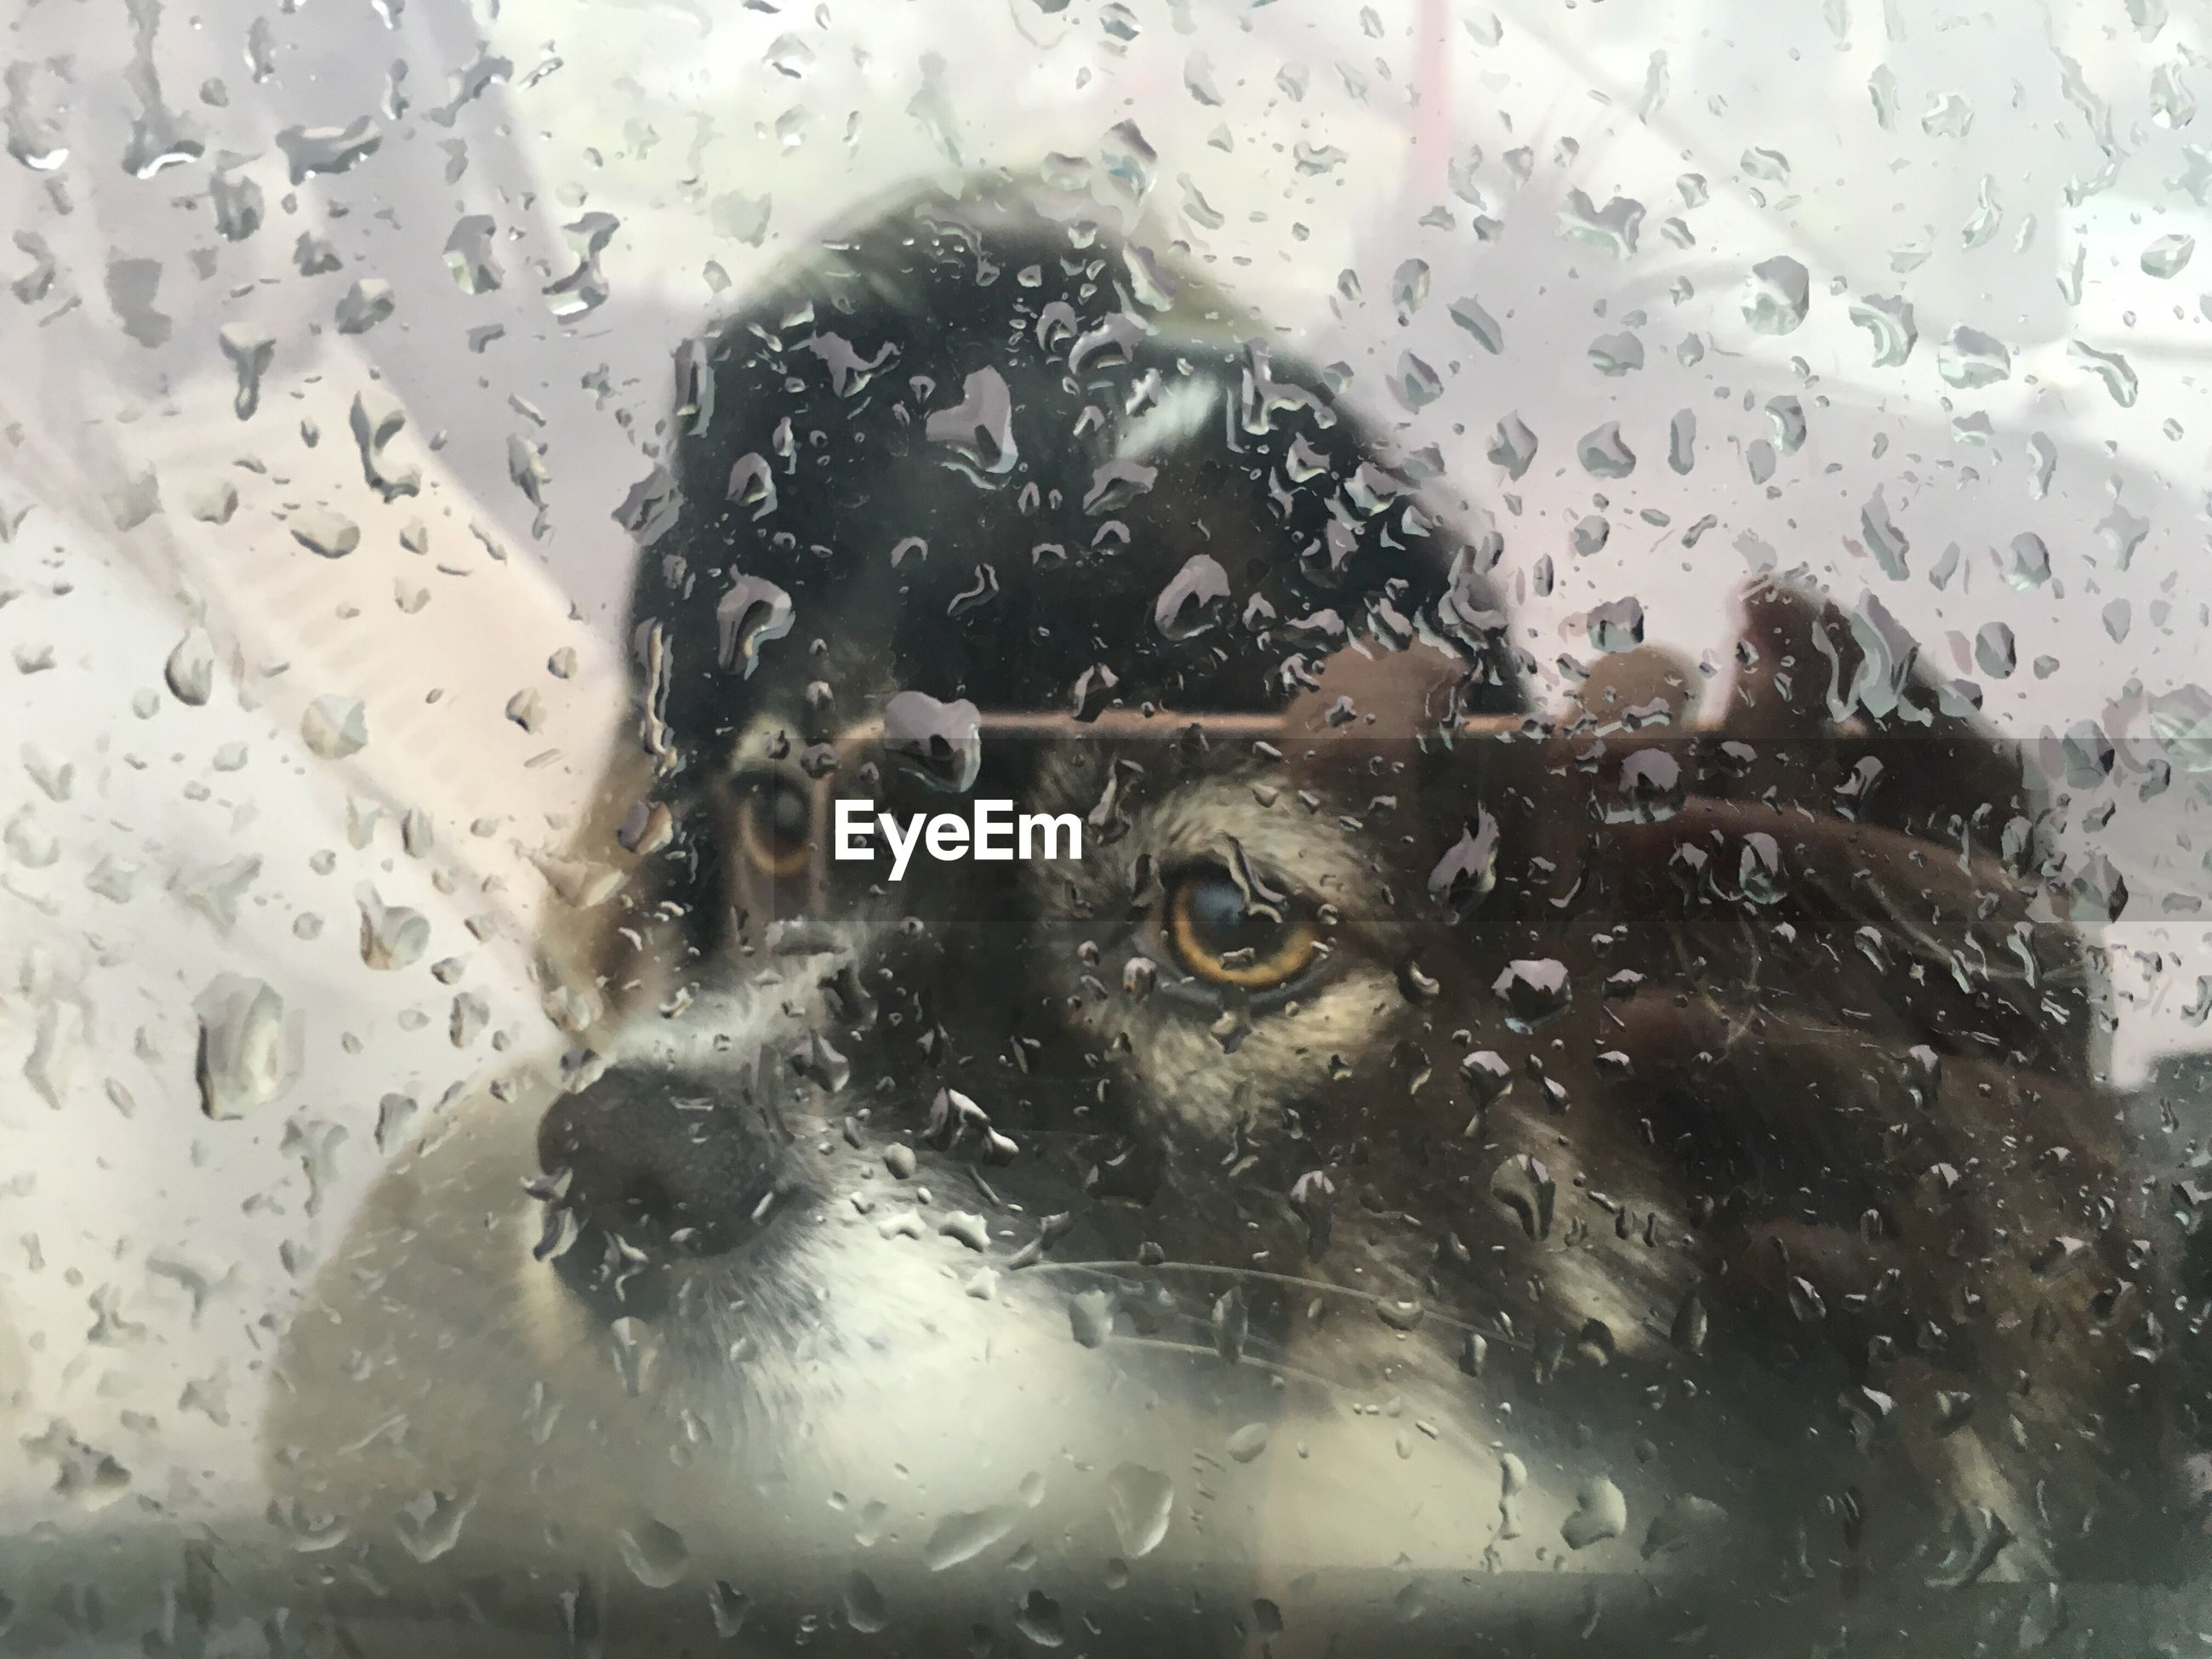 Reflection of person photographing dog through wet glass